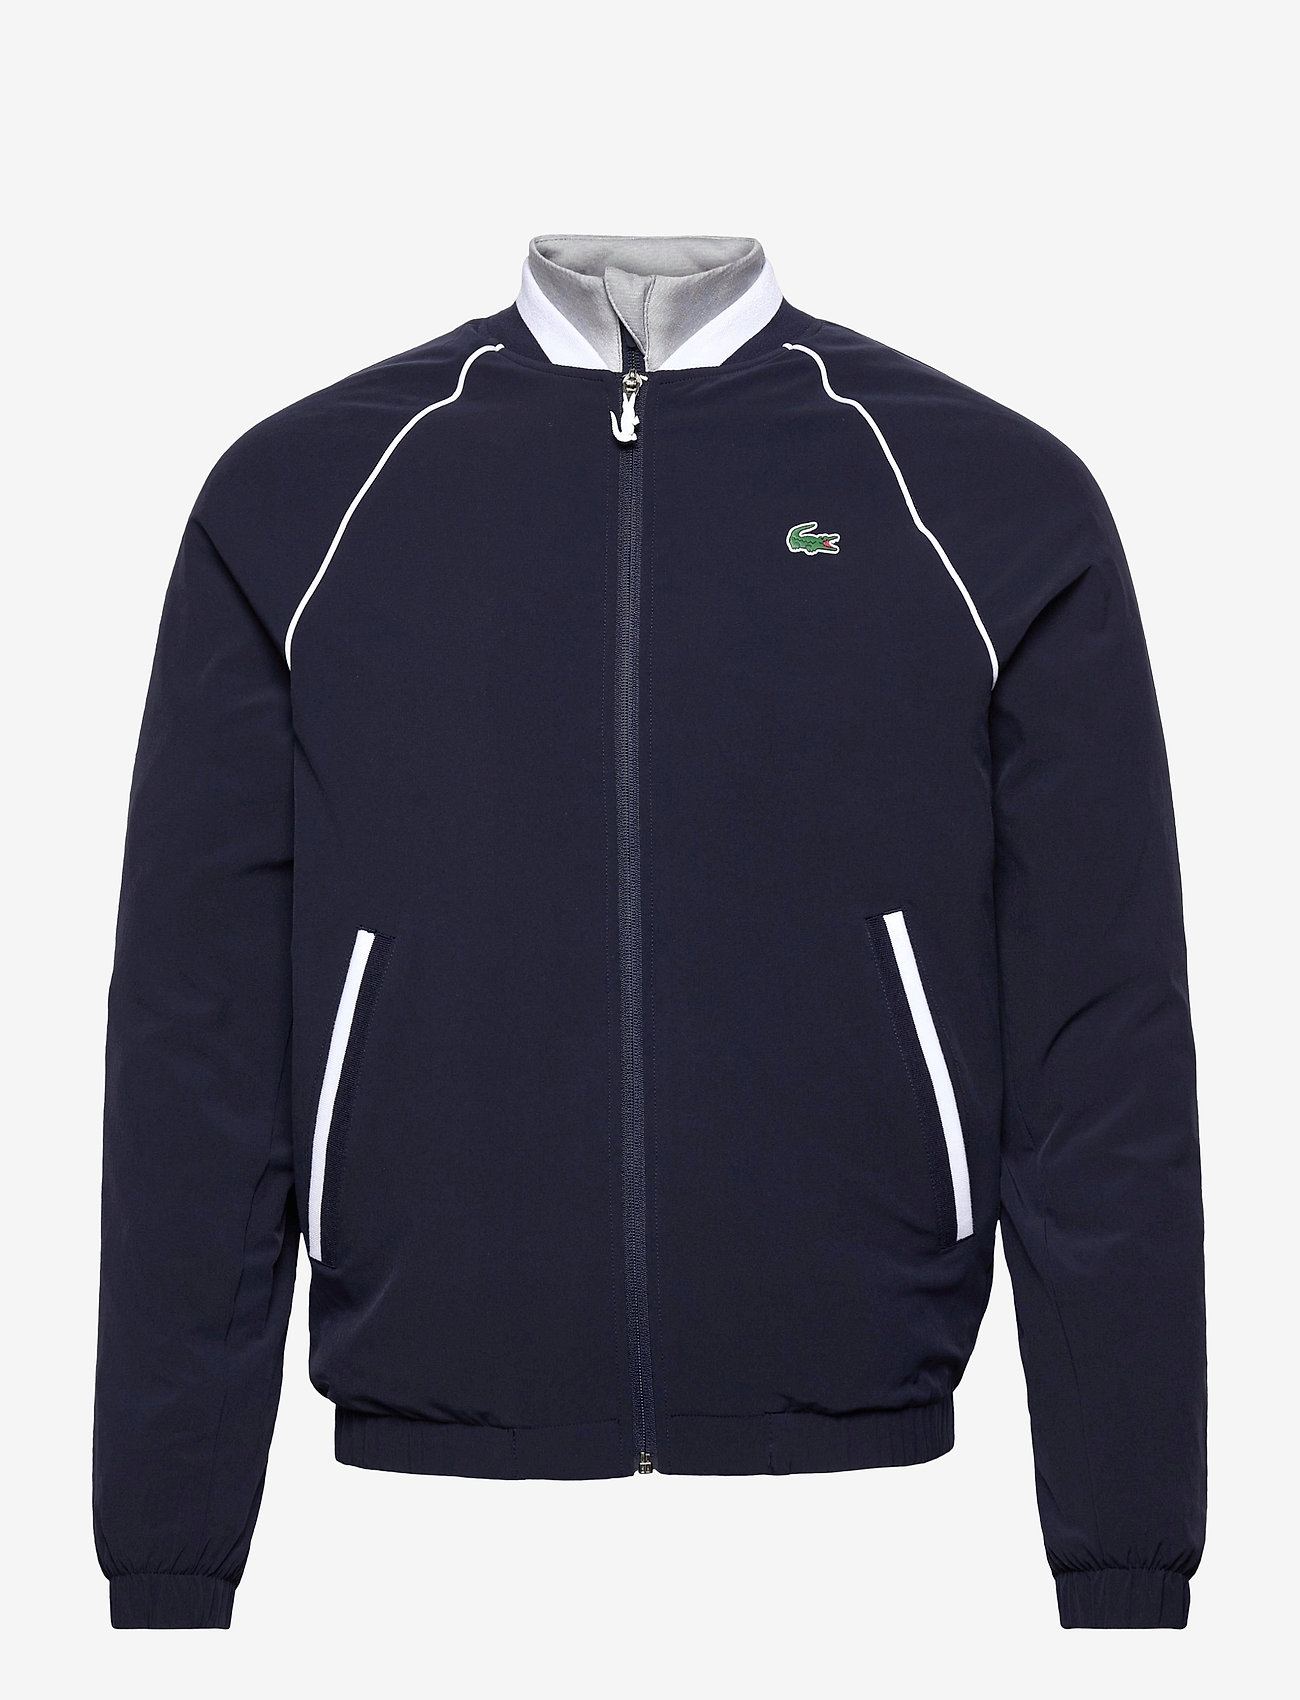 Lacoste - Men s jacket - golf jackets - navy blue/silver chine-white - 0